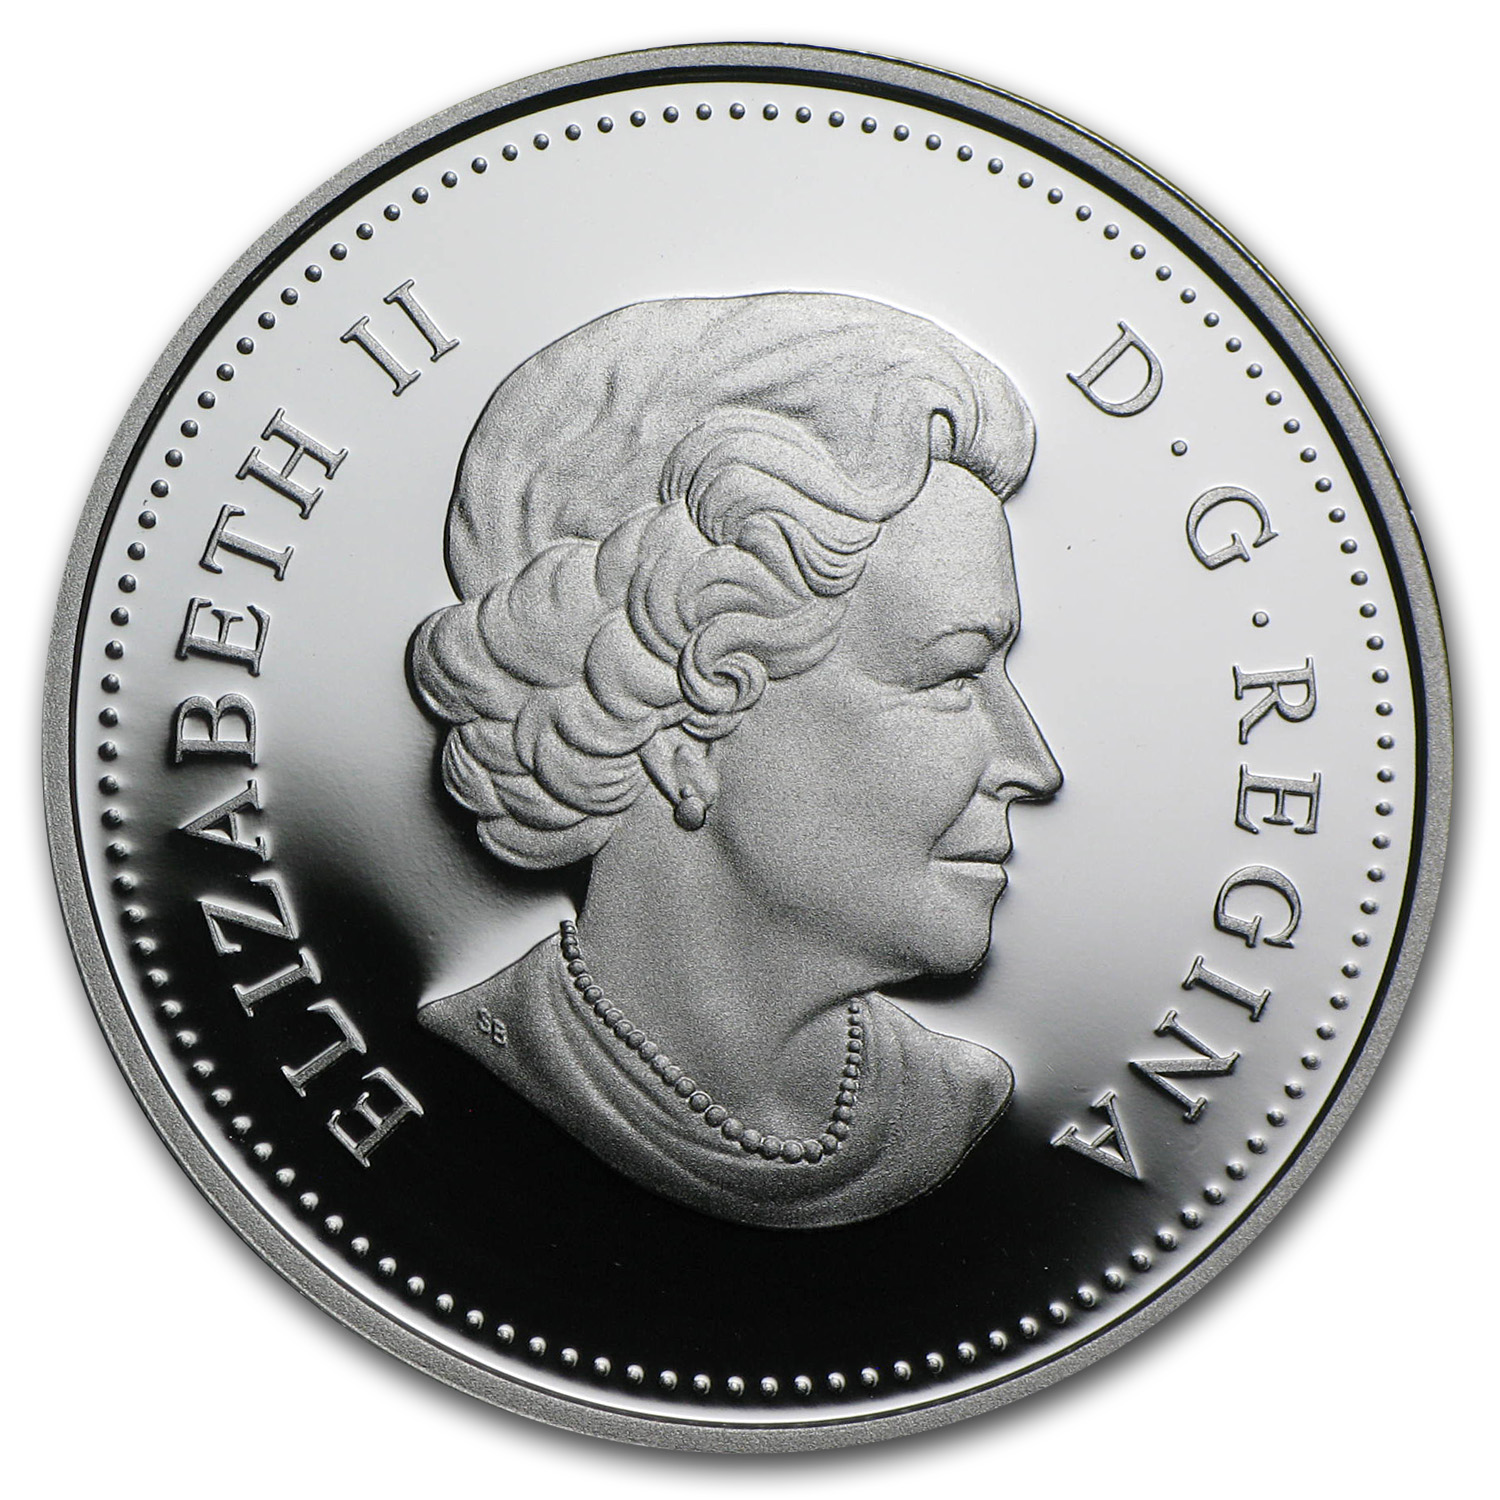 2010 Canada Silver Dollar 100th Anniv. of the Canadian Navy